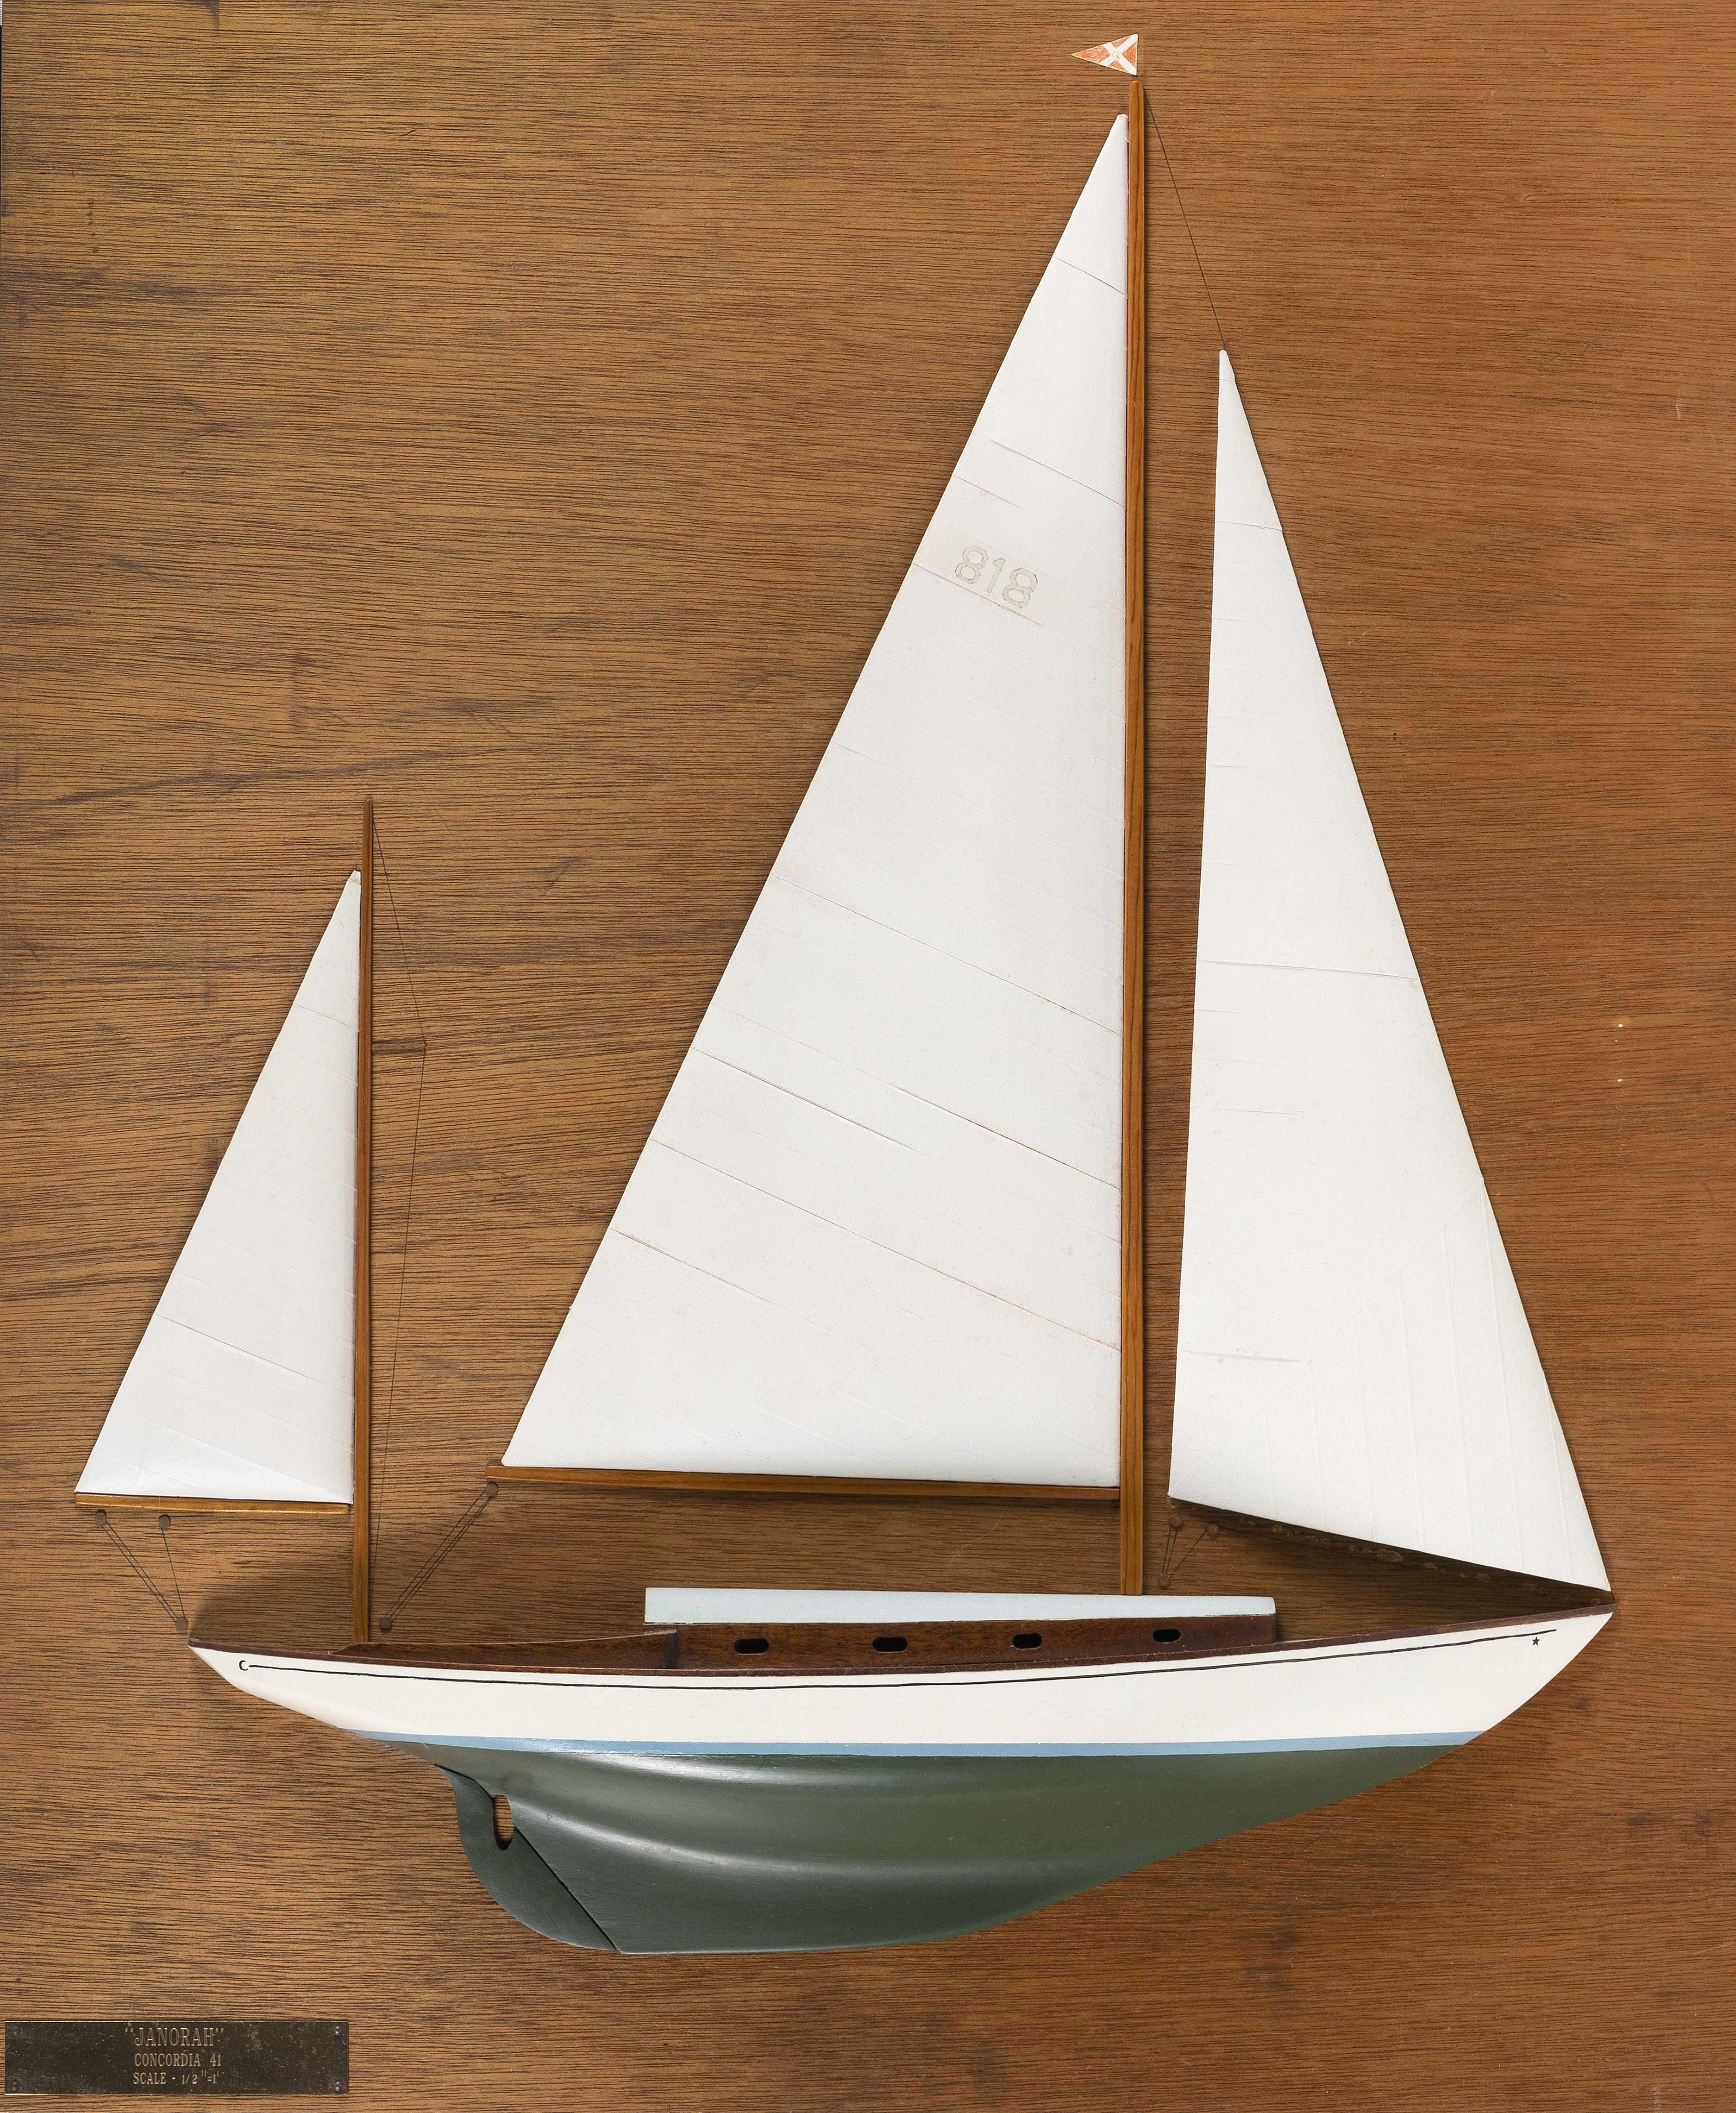 Image 1 for MOUNTED HALF HULL MODEL OF THE SAILBOAT